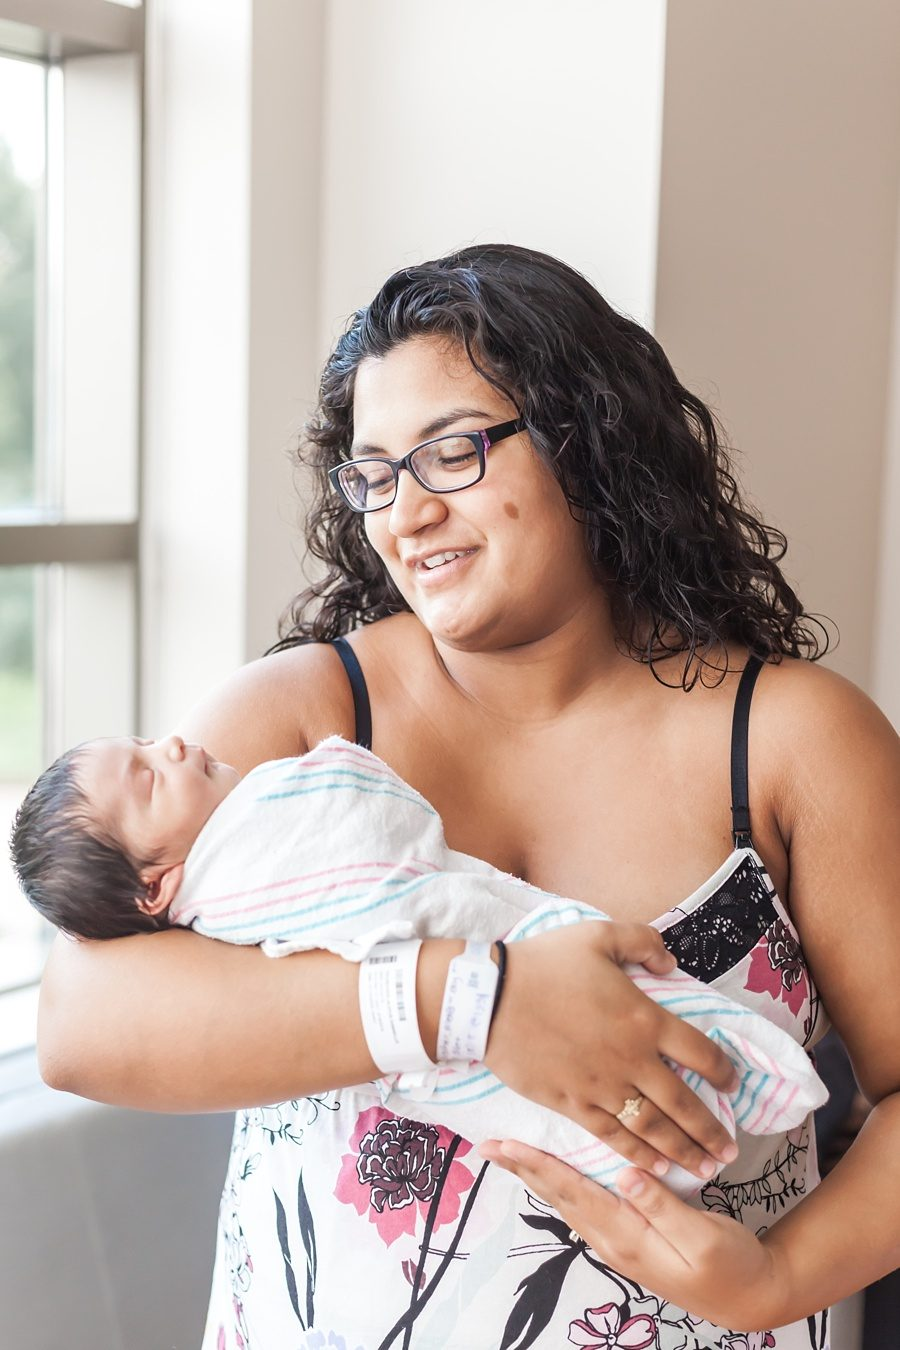 newborn hospital photo session with mom in floral nightgown